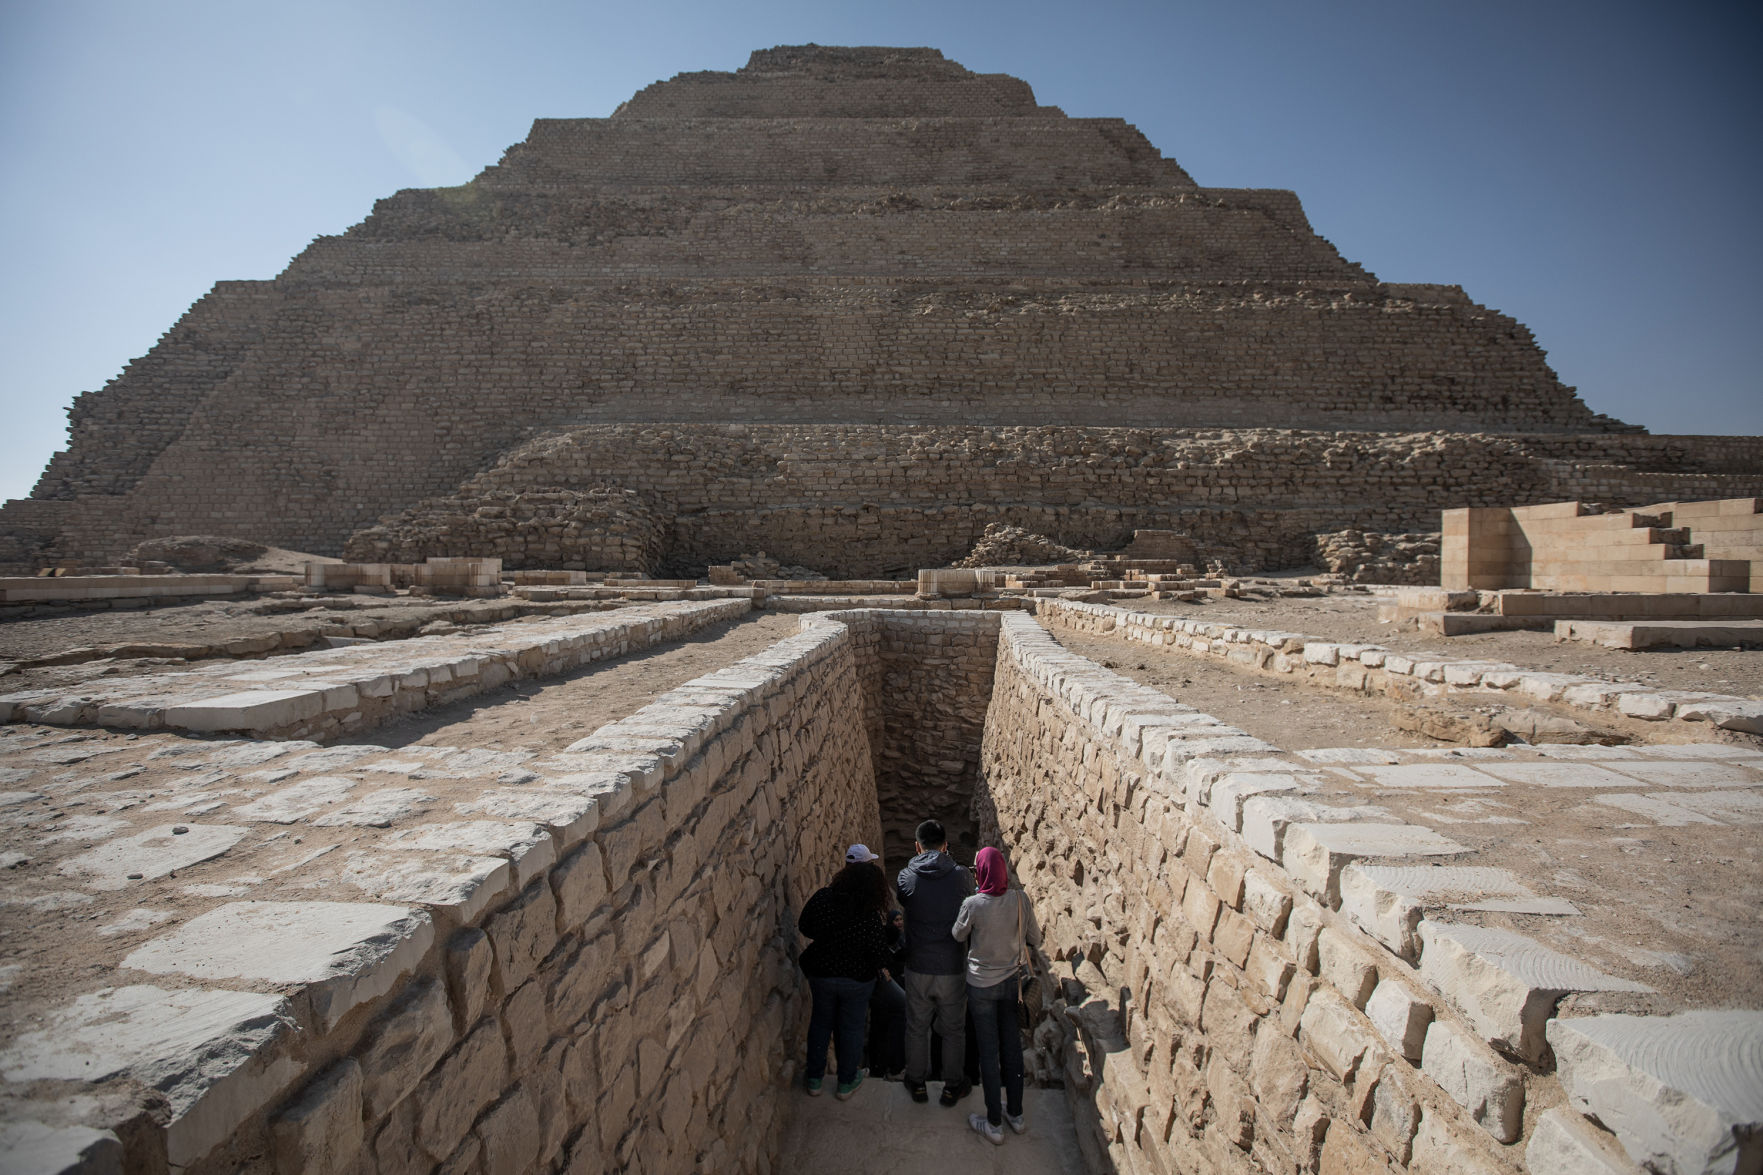 Egypt's oldest pyramid has finally reopened to the public